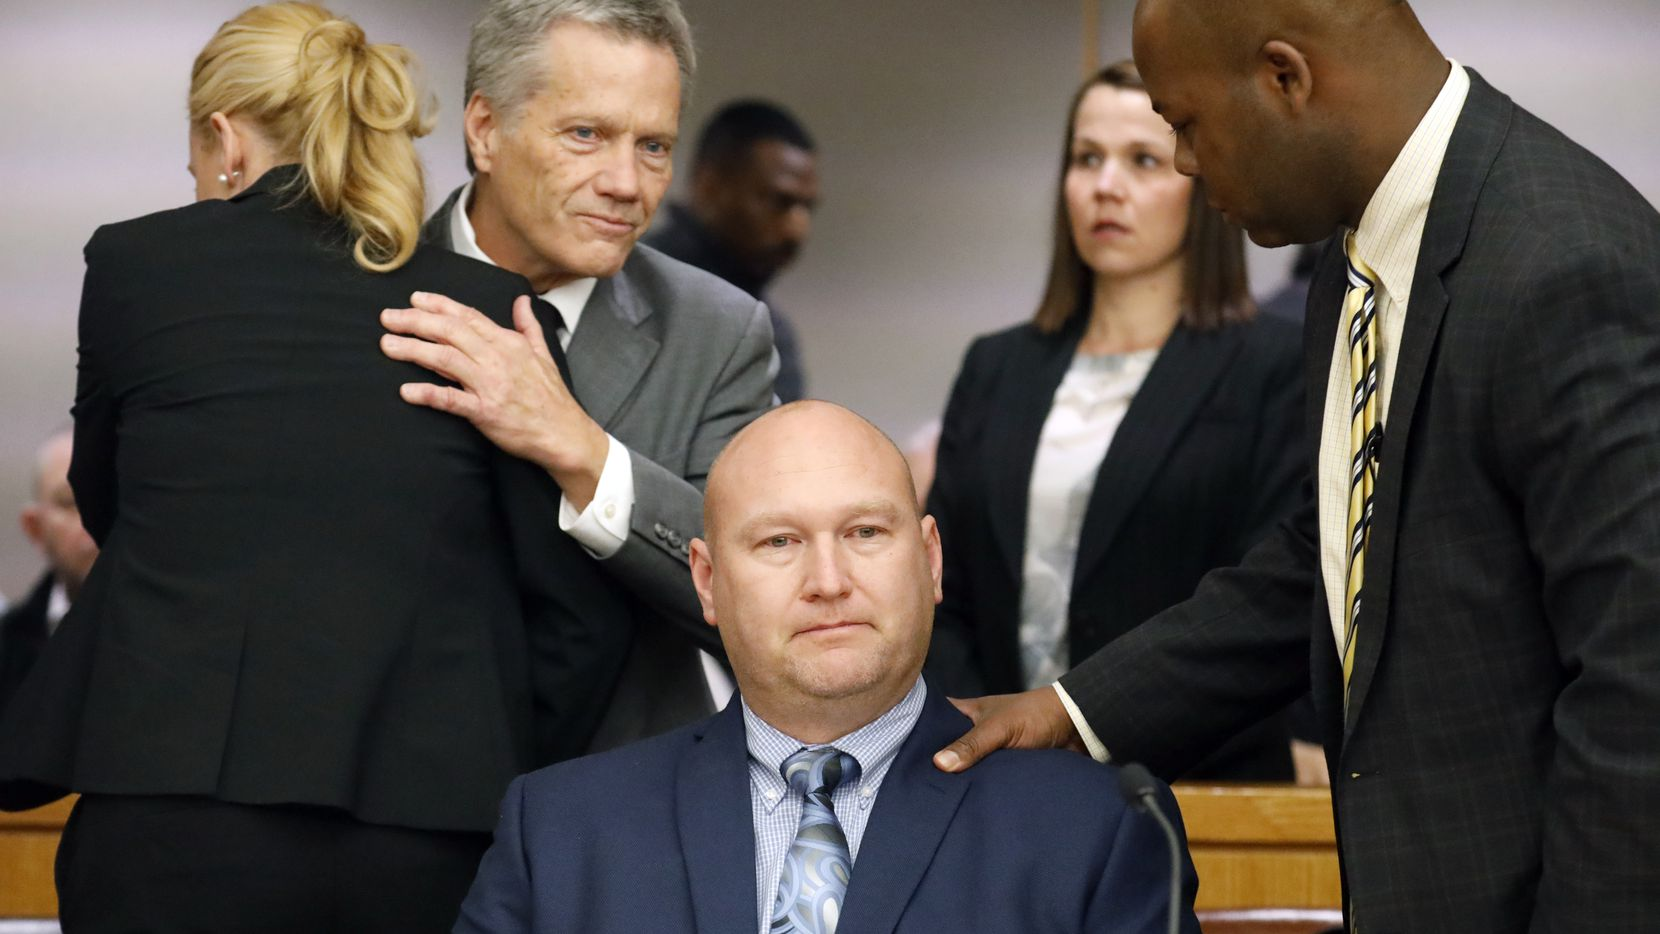 Former Dallas police officer Christopher Hess (seated) takes a moment for himself as his attorneys congratulate one another after Hess was found not guilty of aggravated assault.